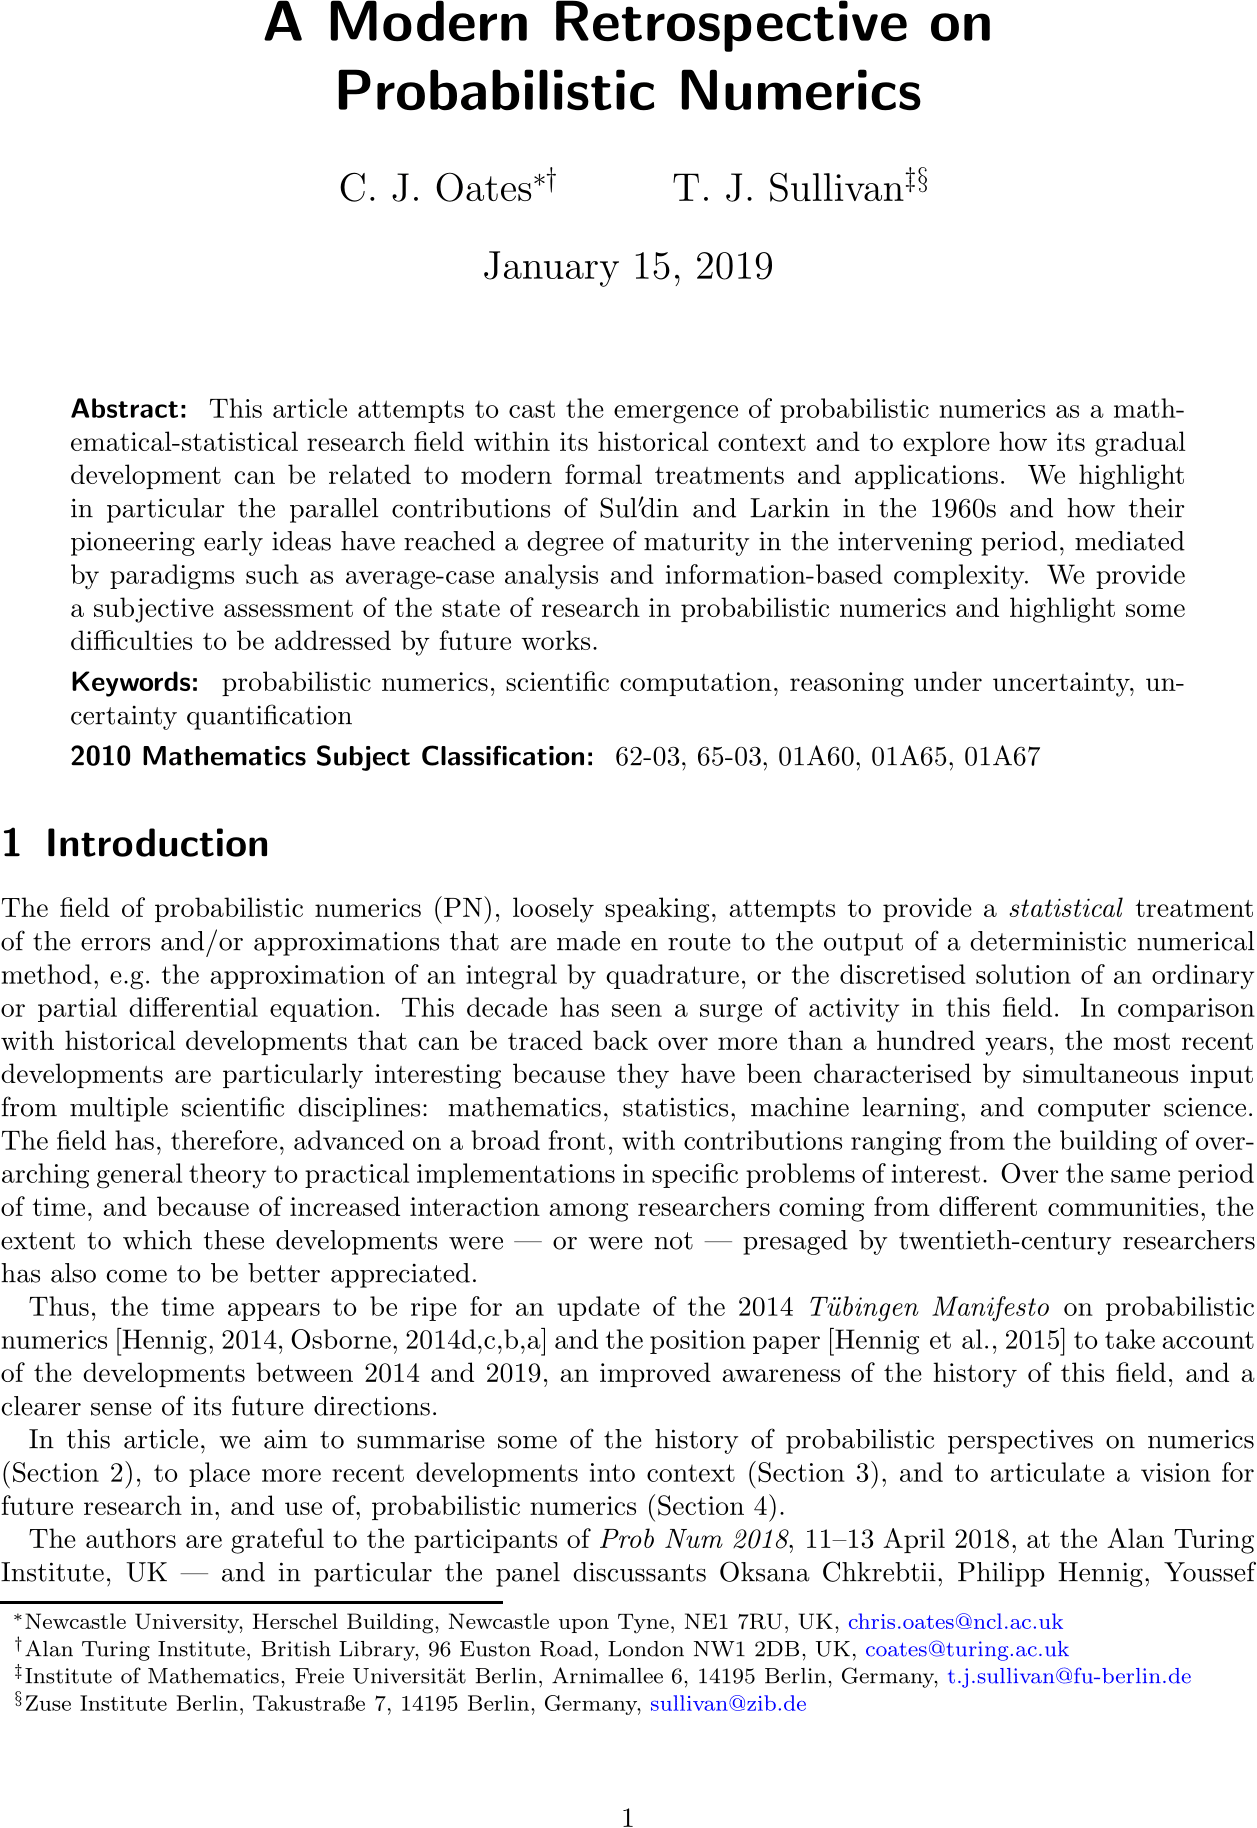 A modern retrospective on probabilistic numerics